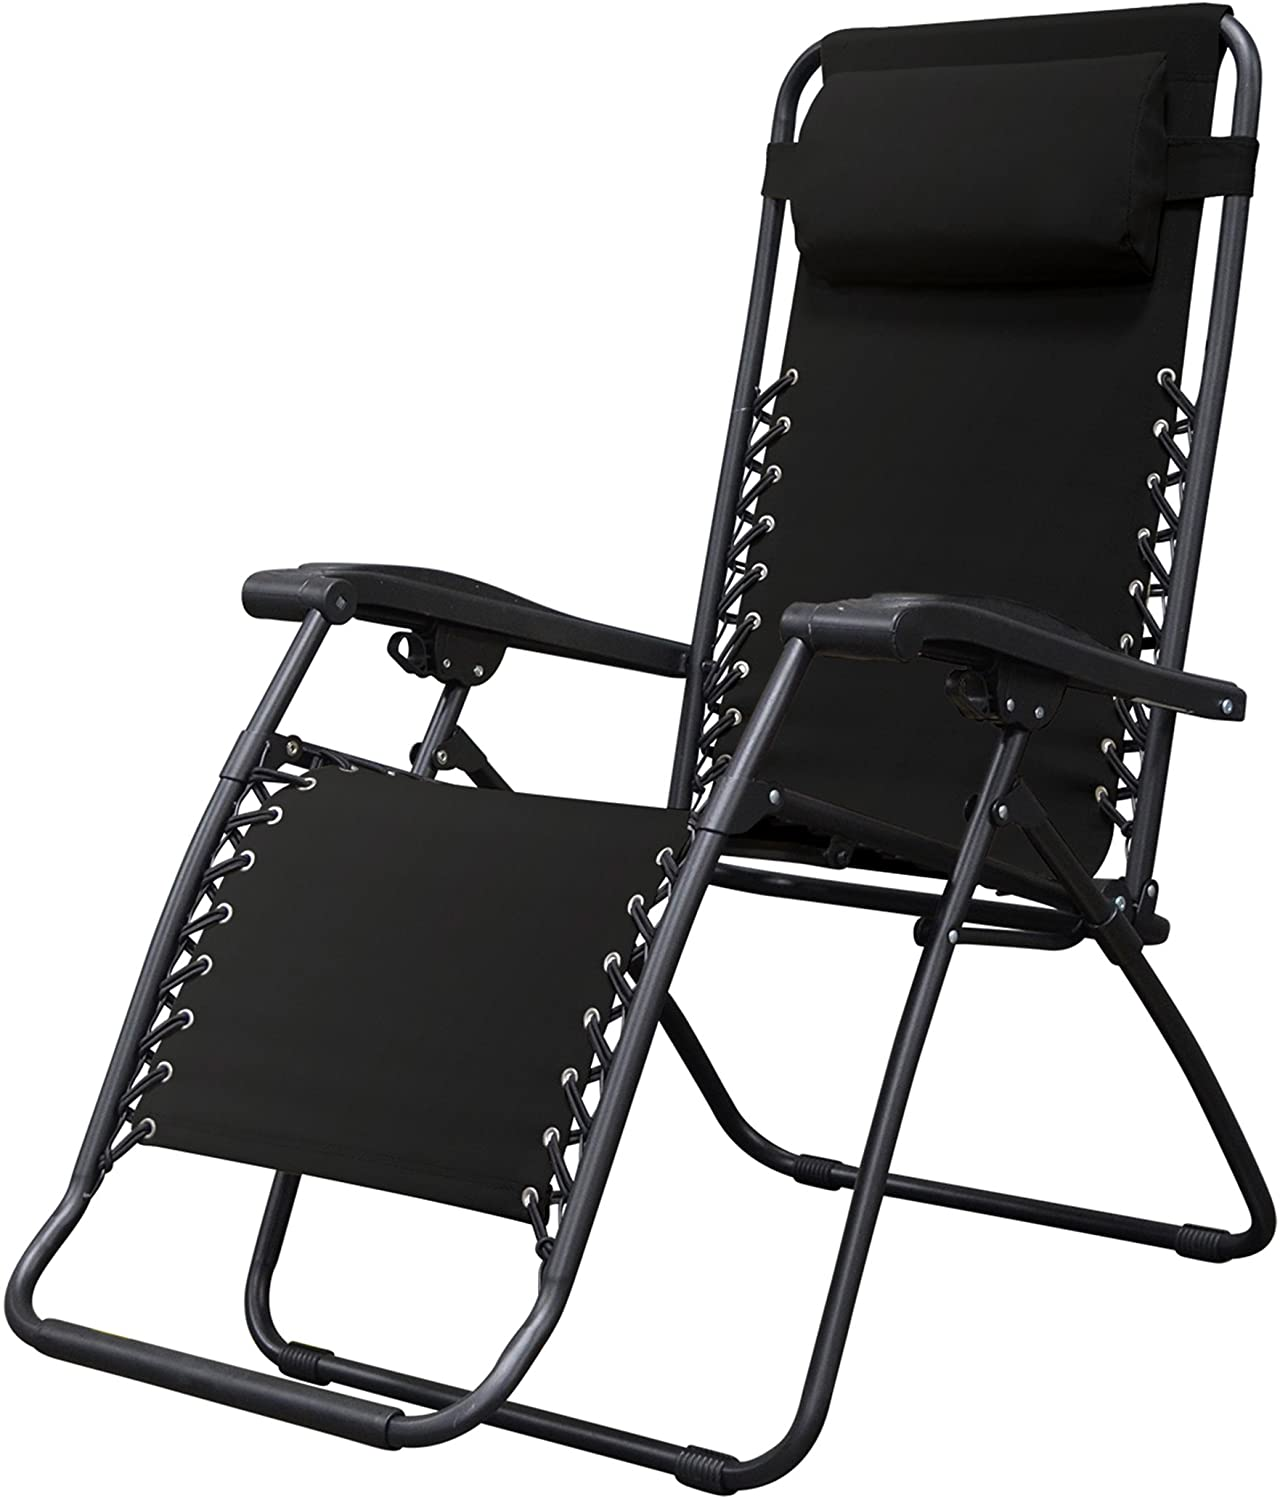 Caravan Canopy Sports Infinity Black Zero Gravity Chair